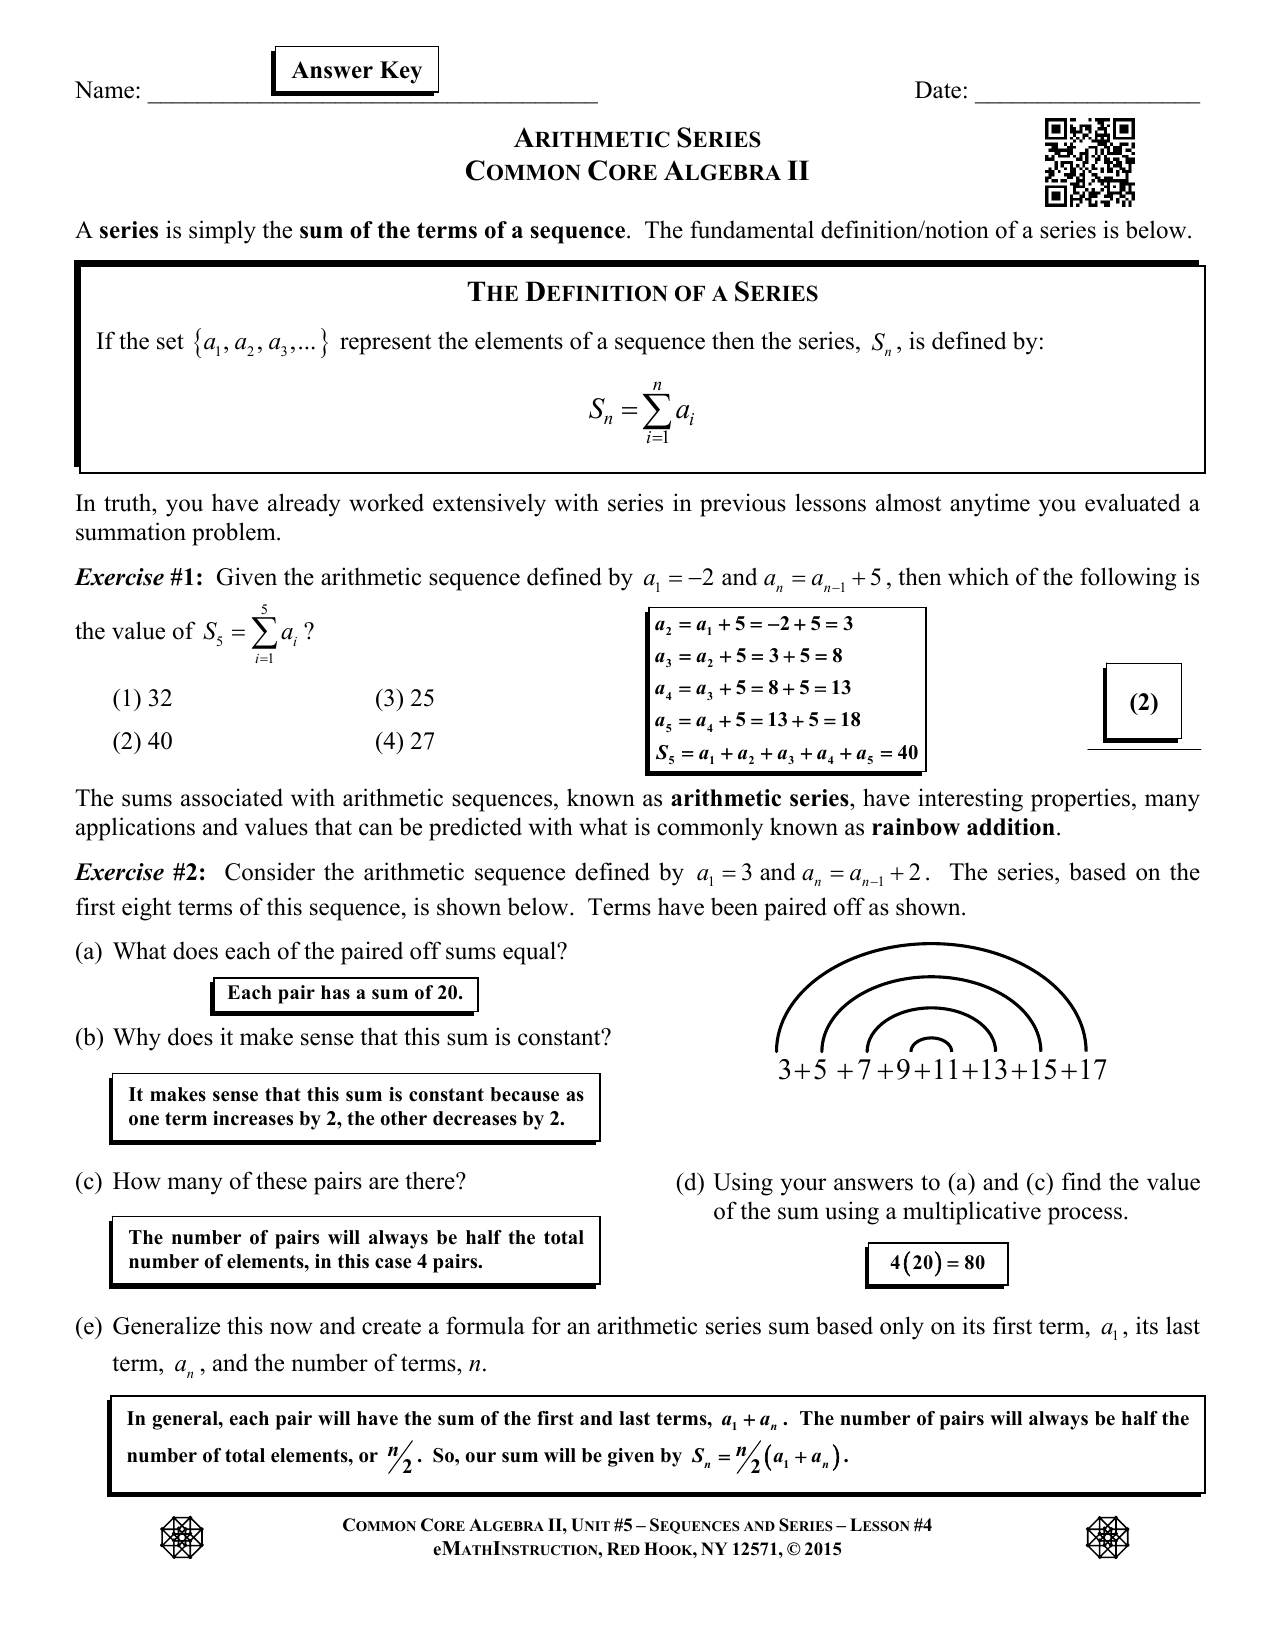 Arithmetic Series Worksheet Answers With Work